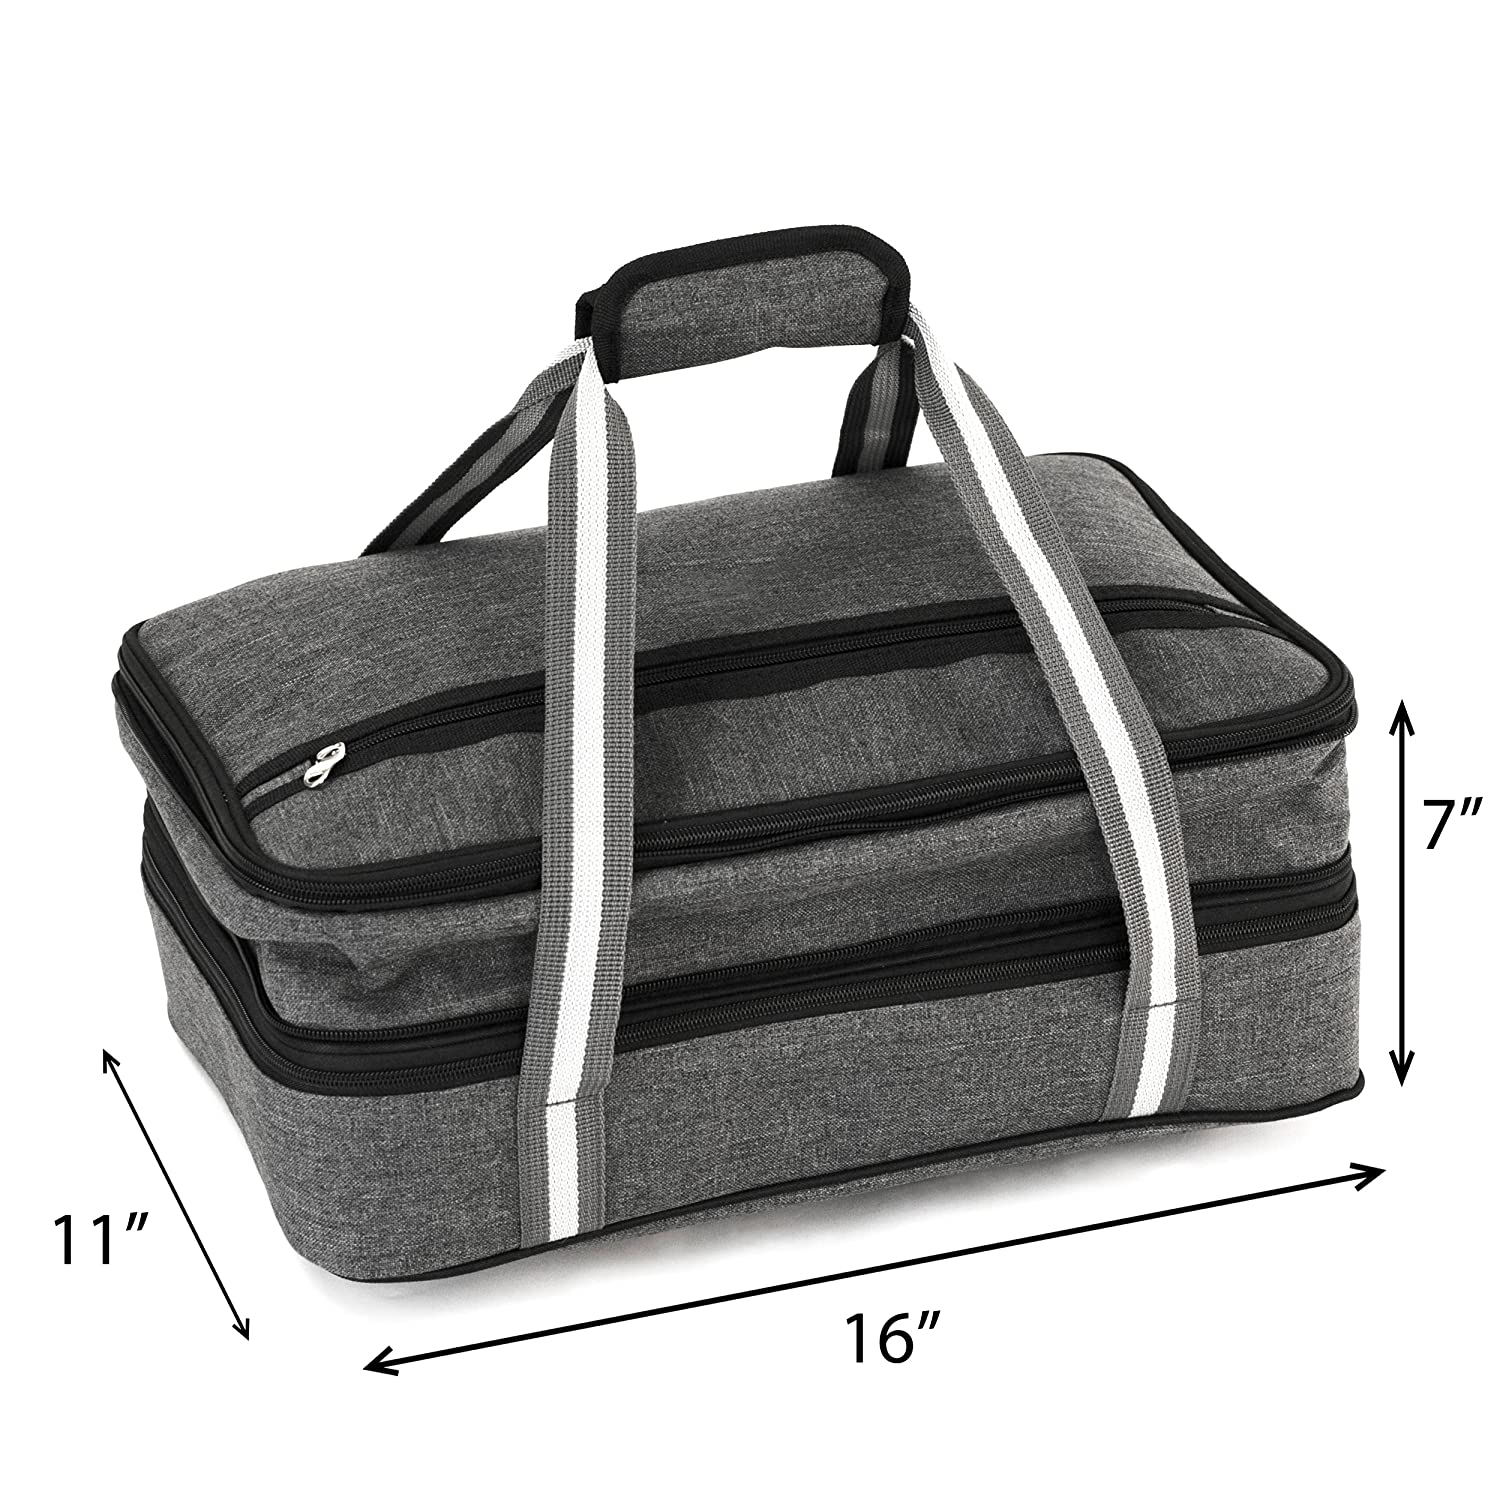 5e9ecc90610560 Insulated Expandable Double Casserole Carrier and Lasagna Holder for Picnic  Potluck Beach Day Trip Camping Hiking - Hot and Cold Thermal Bag in Gray –  Tote ...